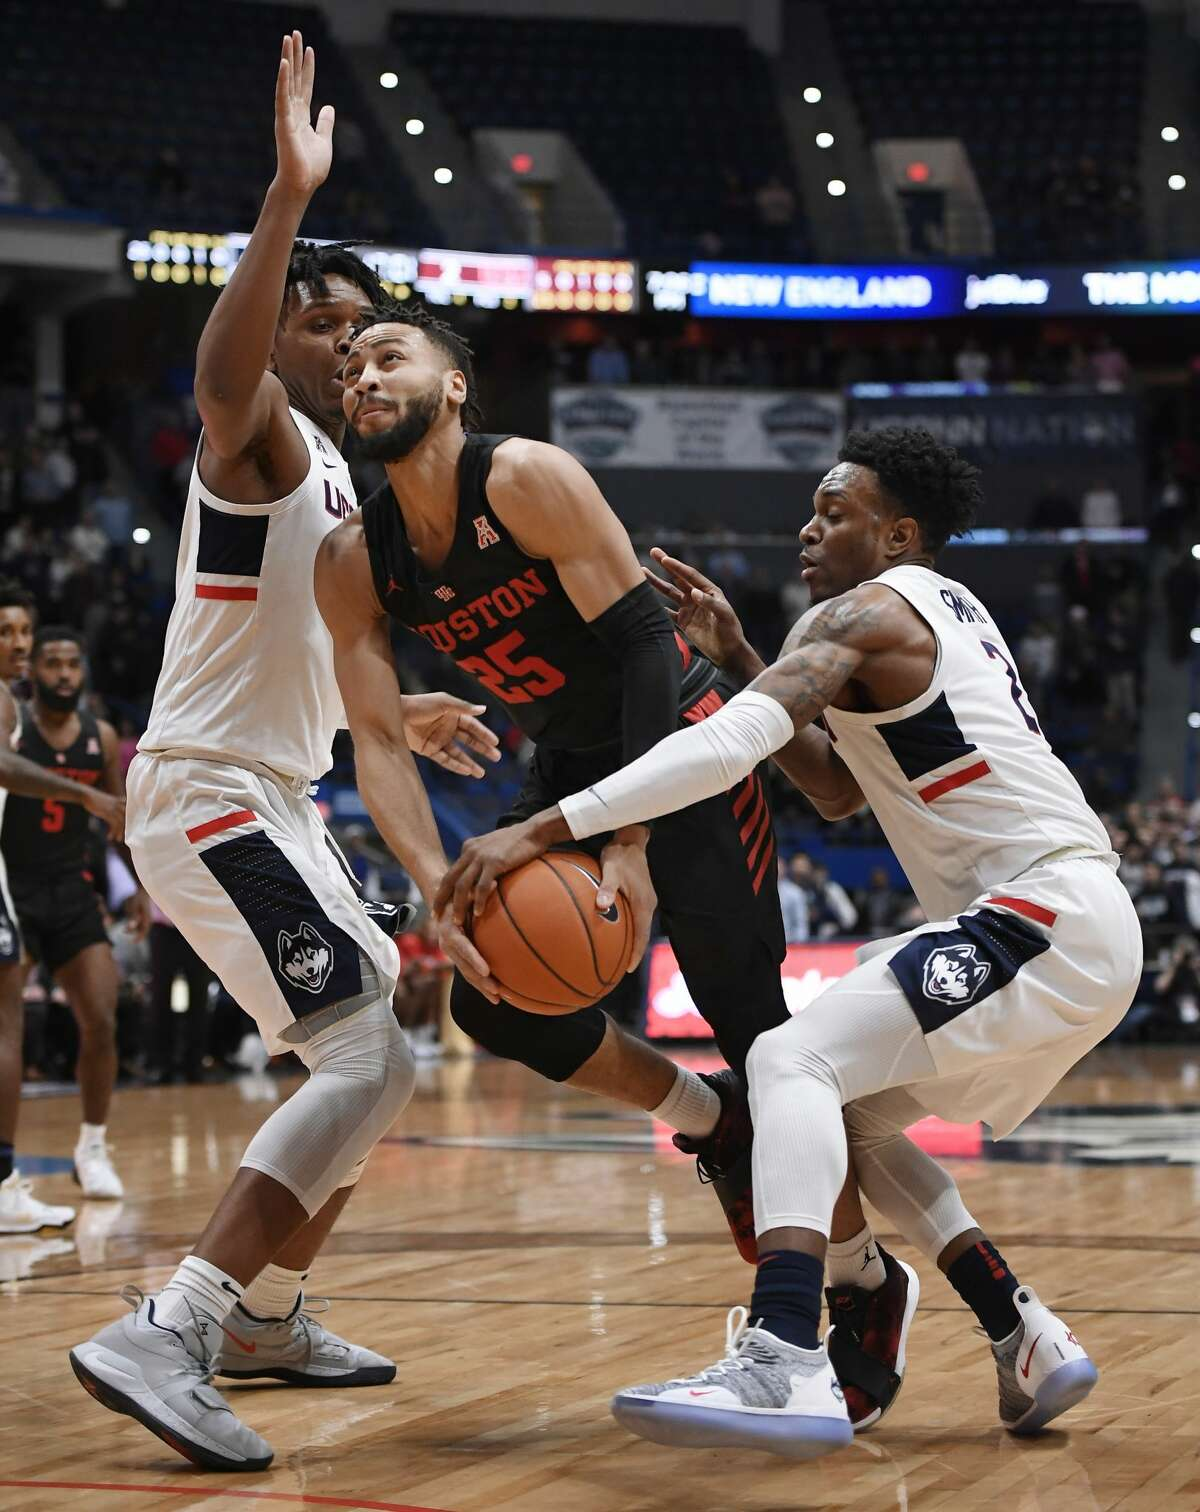 Connecticut's Tarin Smith, right, strips the ball from Houston's Galen Robinson Jr. (25) as Connecticut's Josh Carlton, left, defends during the first half of an NCAA college basketball game, Thursday, Feb. 14, 2019, in Hartford, Conn. (AP Photo/Jessica Hill)